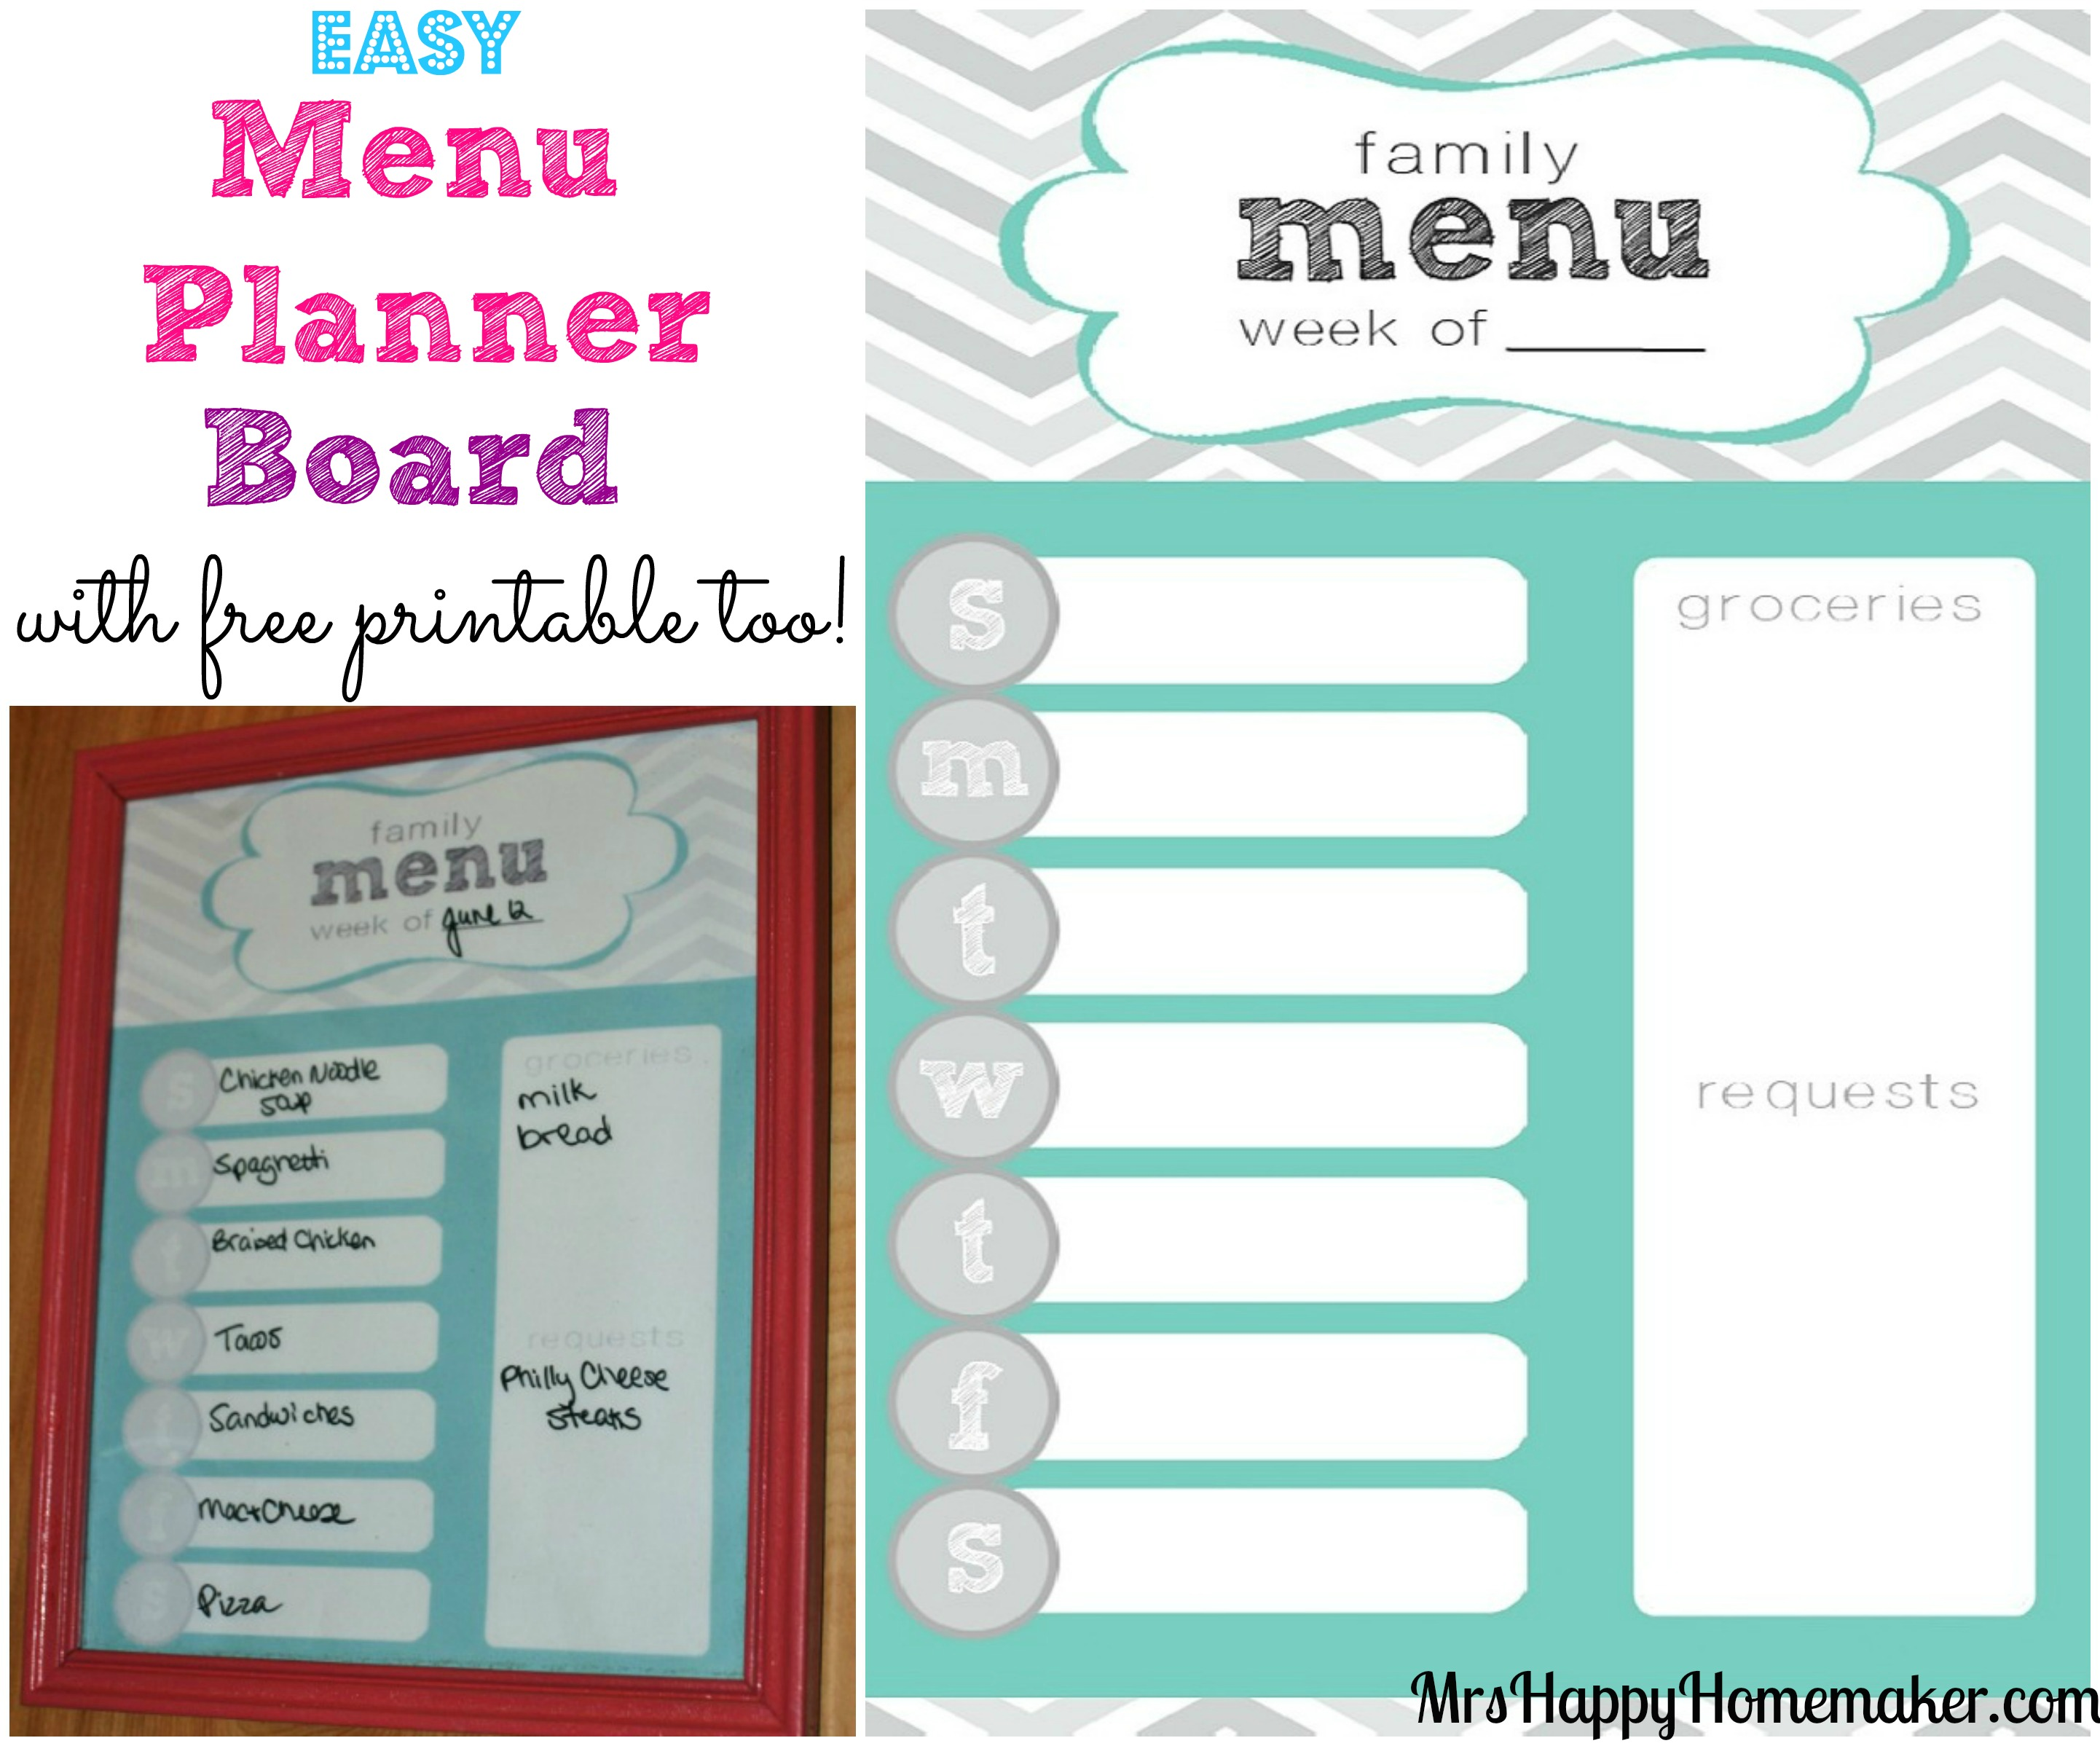 easy menu planner board mrs happy homemaker